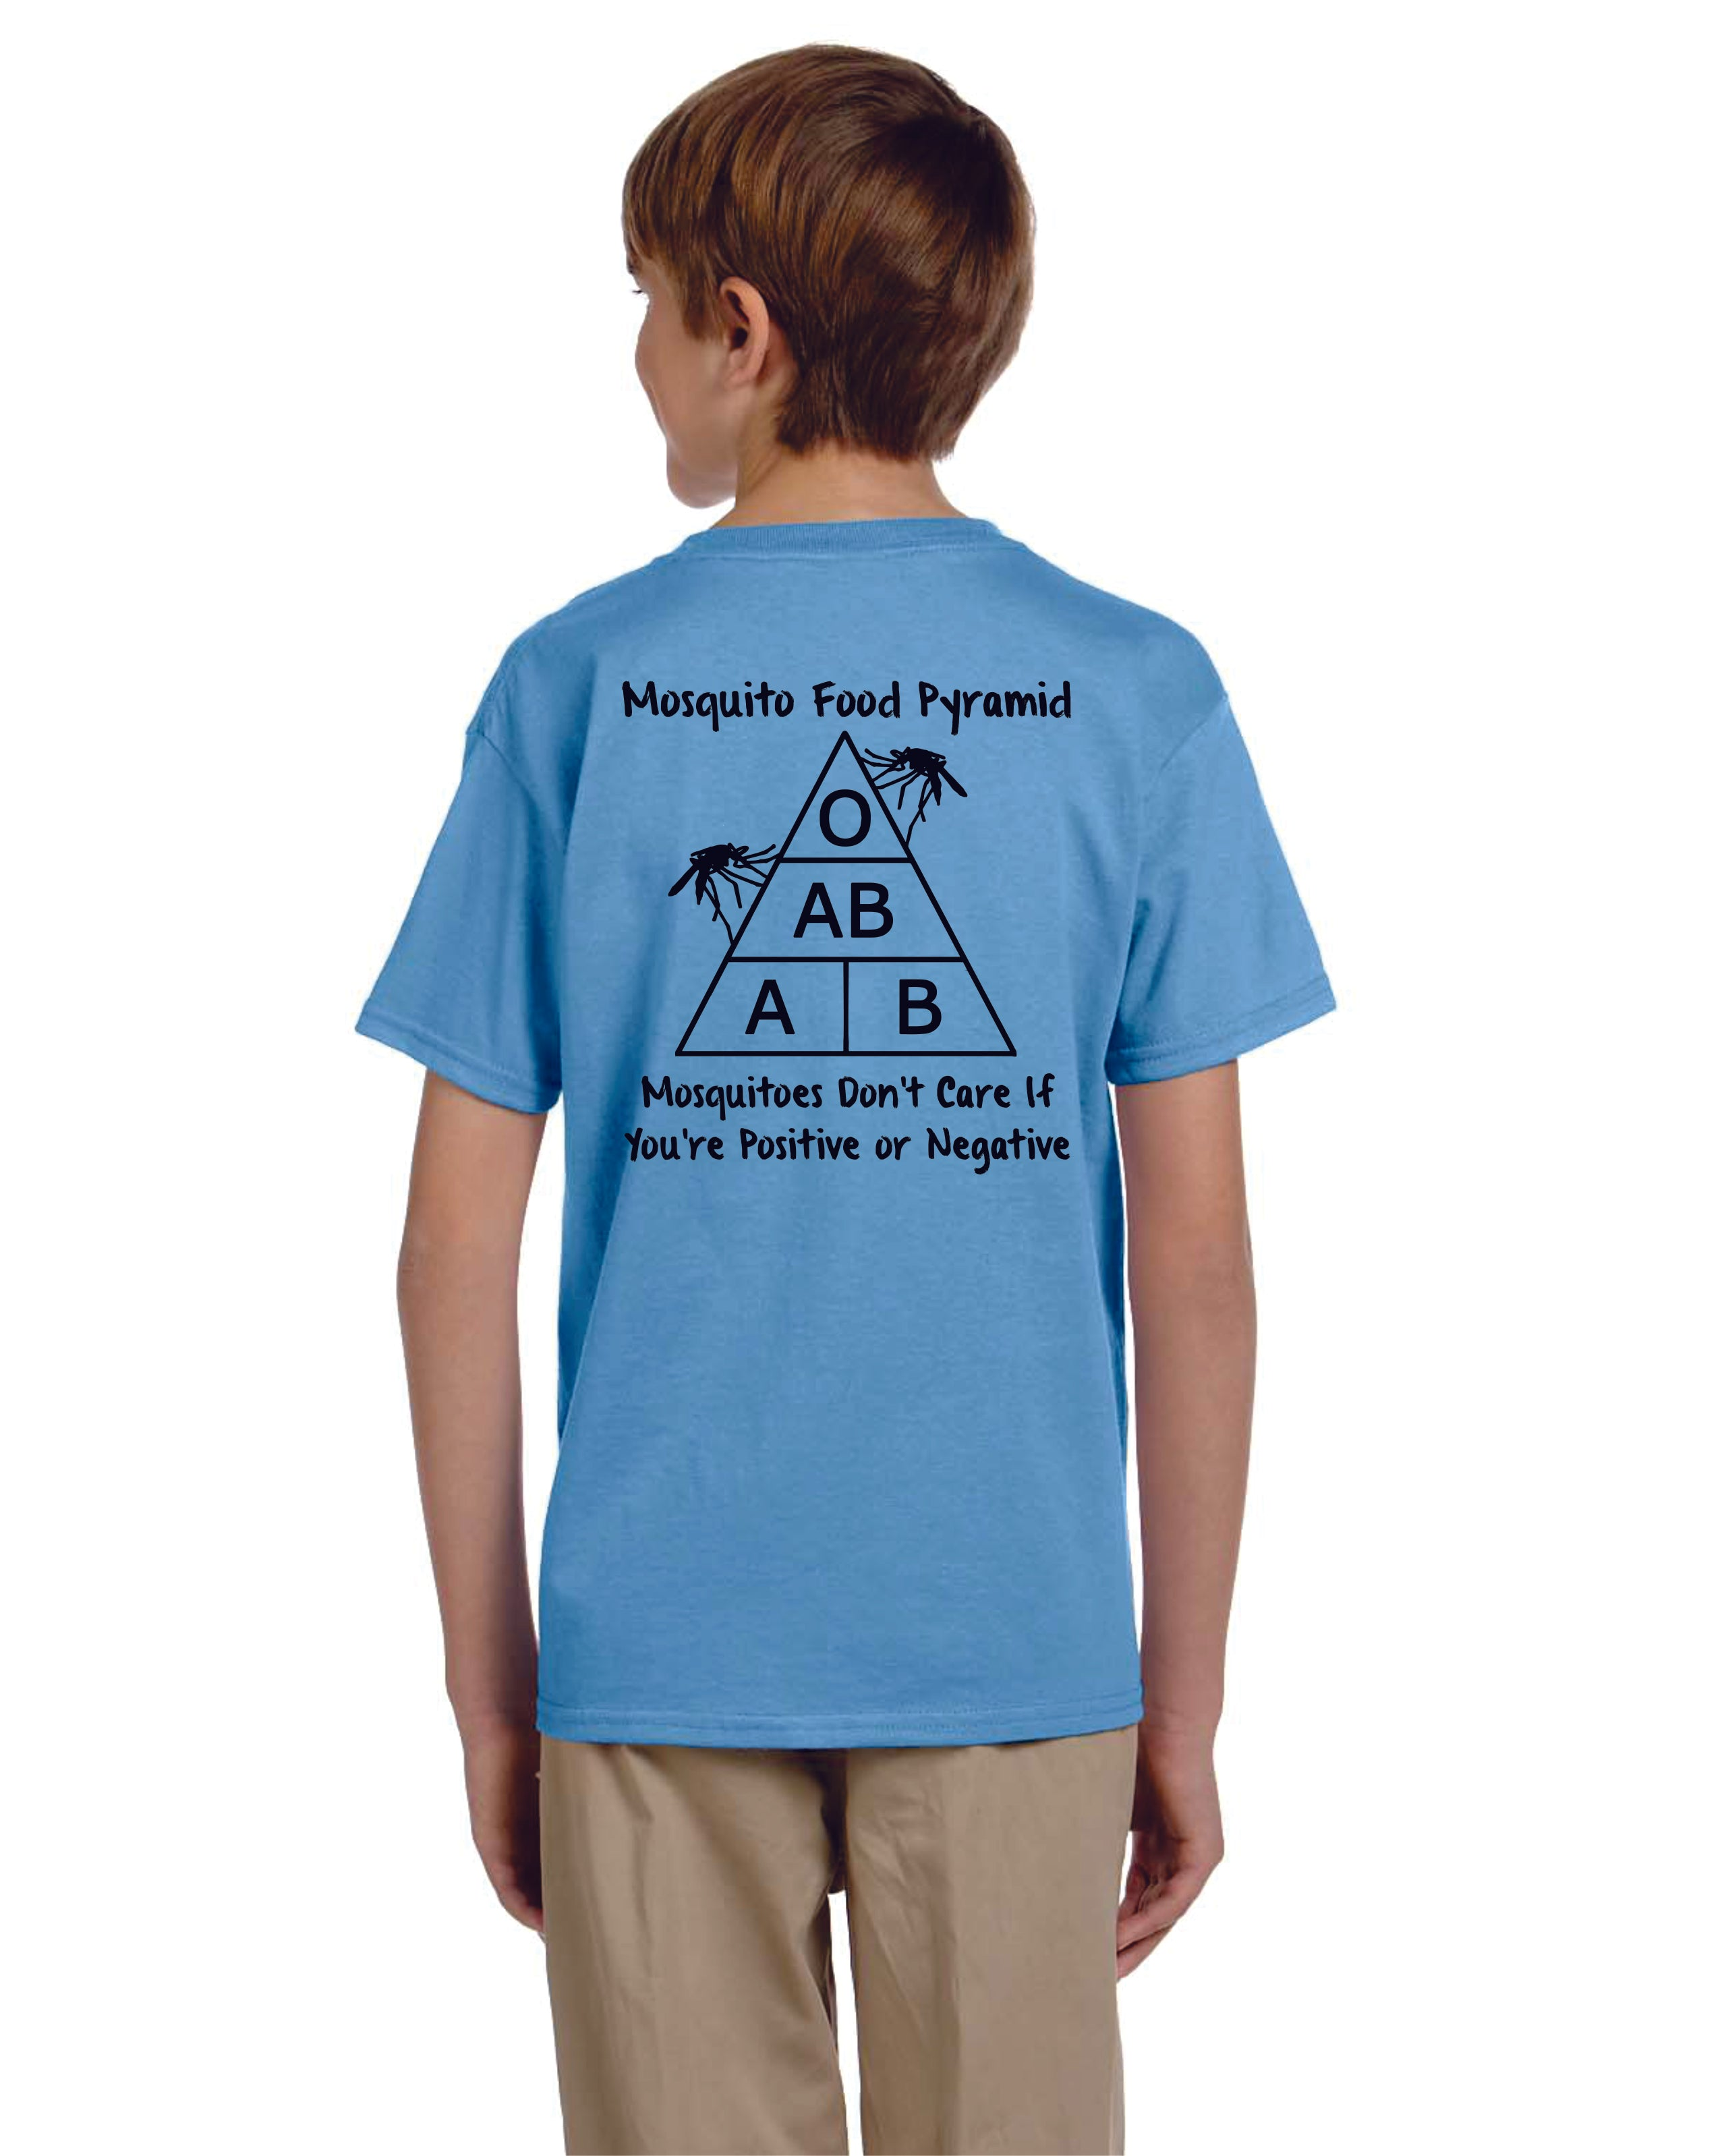 Youth Mosquito Food Pyramid Unisex Cotton Novel-Tee  Make a statement in our Gildan Youth Ultra Cotton T (Sport Gray 90/10 Blend & Ash Gray 99/1 Blend)  Cool breathable cotton keeping you comfortable all summer long in our Mosquito Food Pyramid Tee!